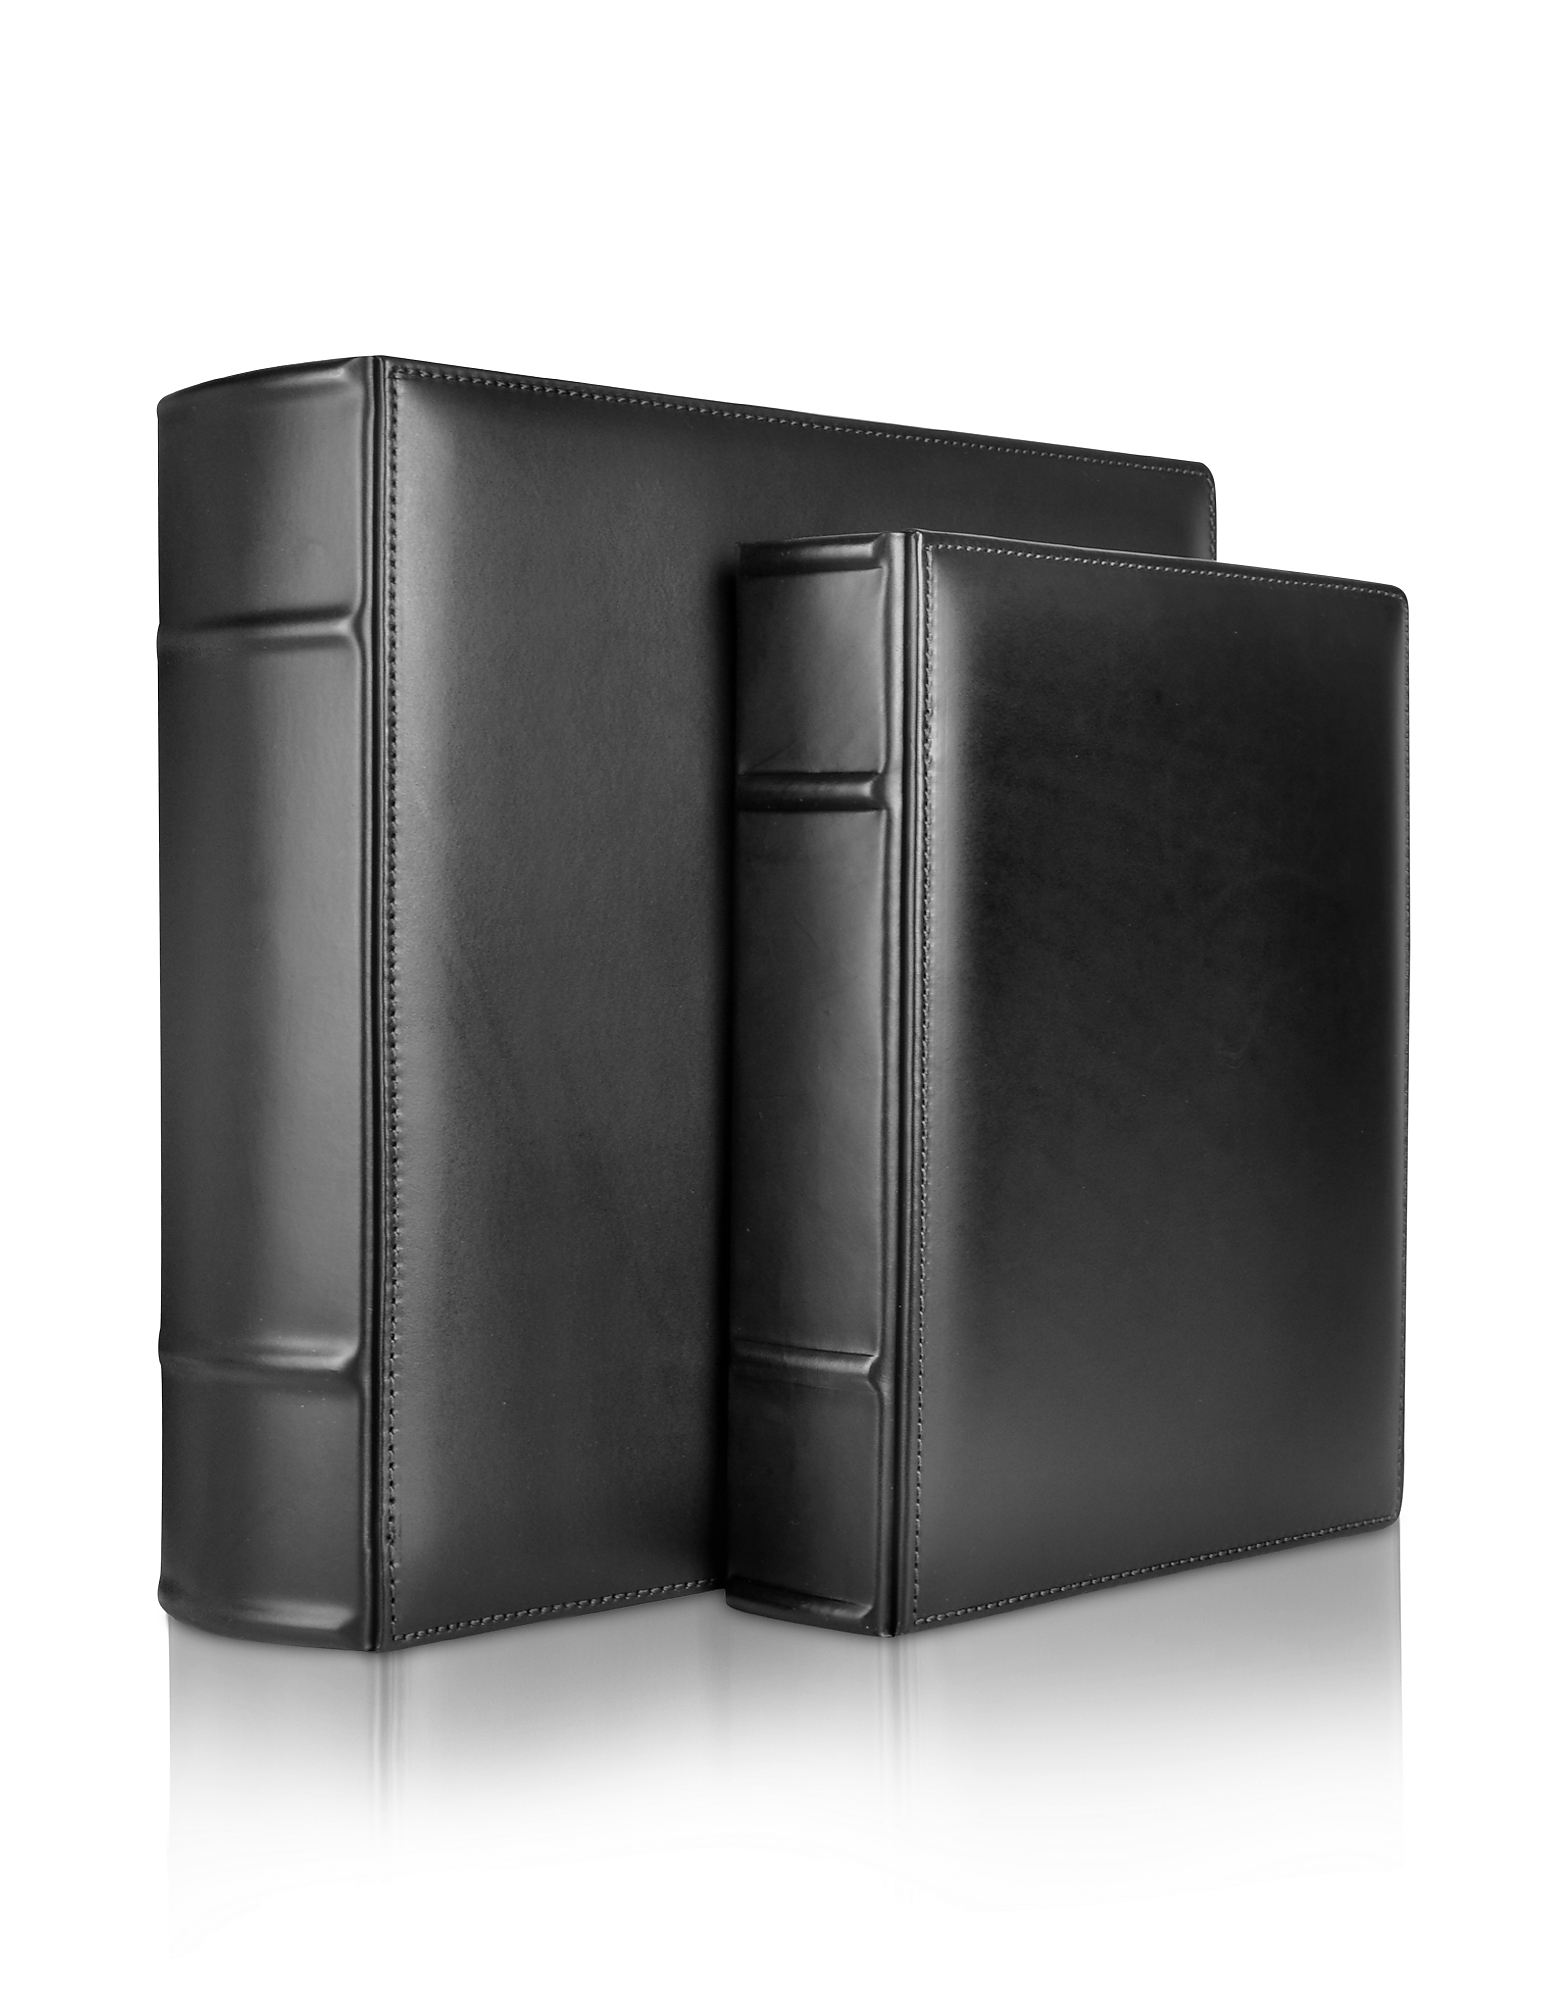 Pineider Picture Frames & Albums, Power Elegance - Black Calf Leather Photo Album